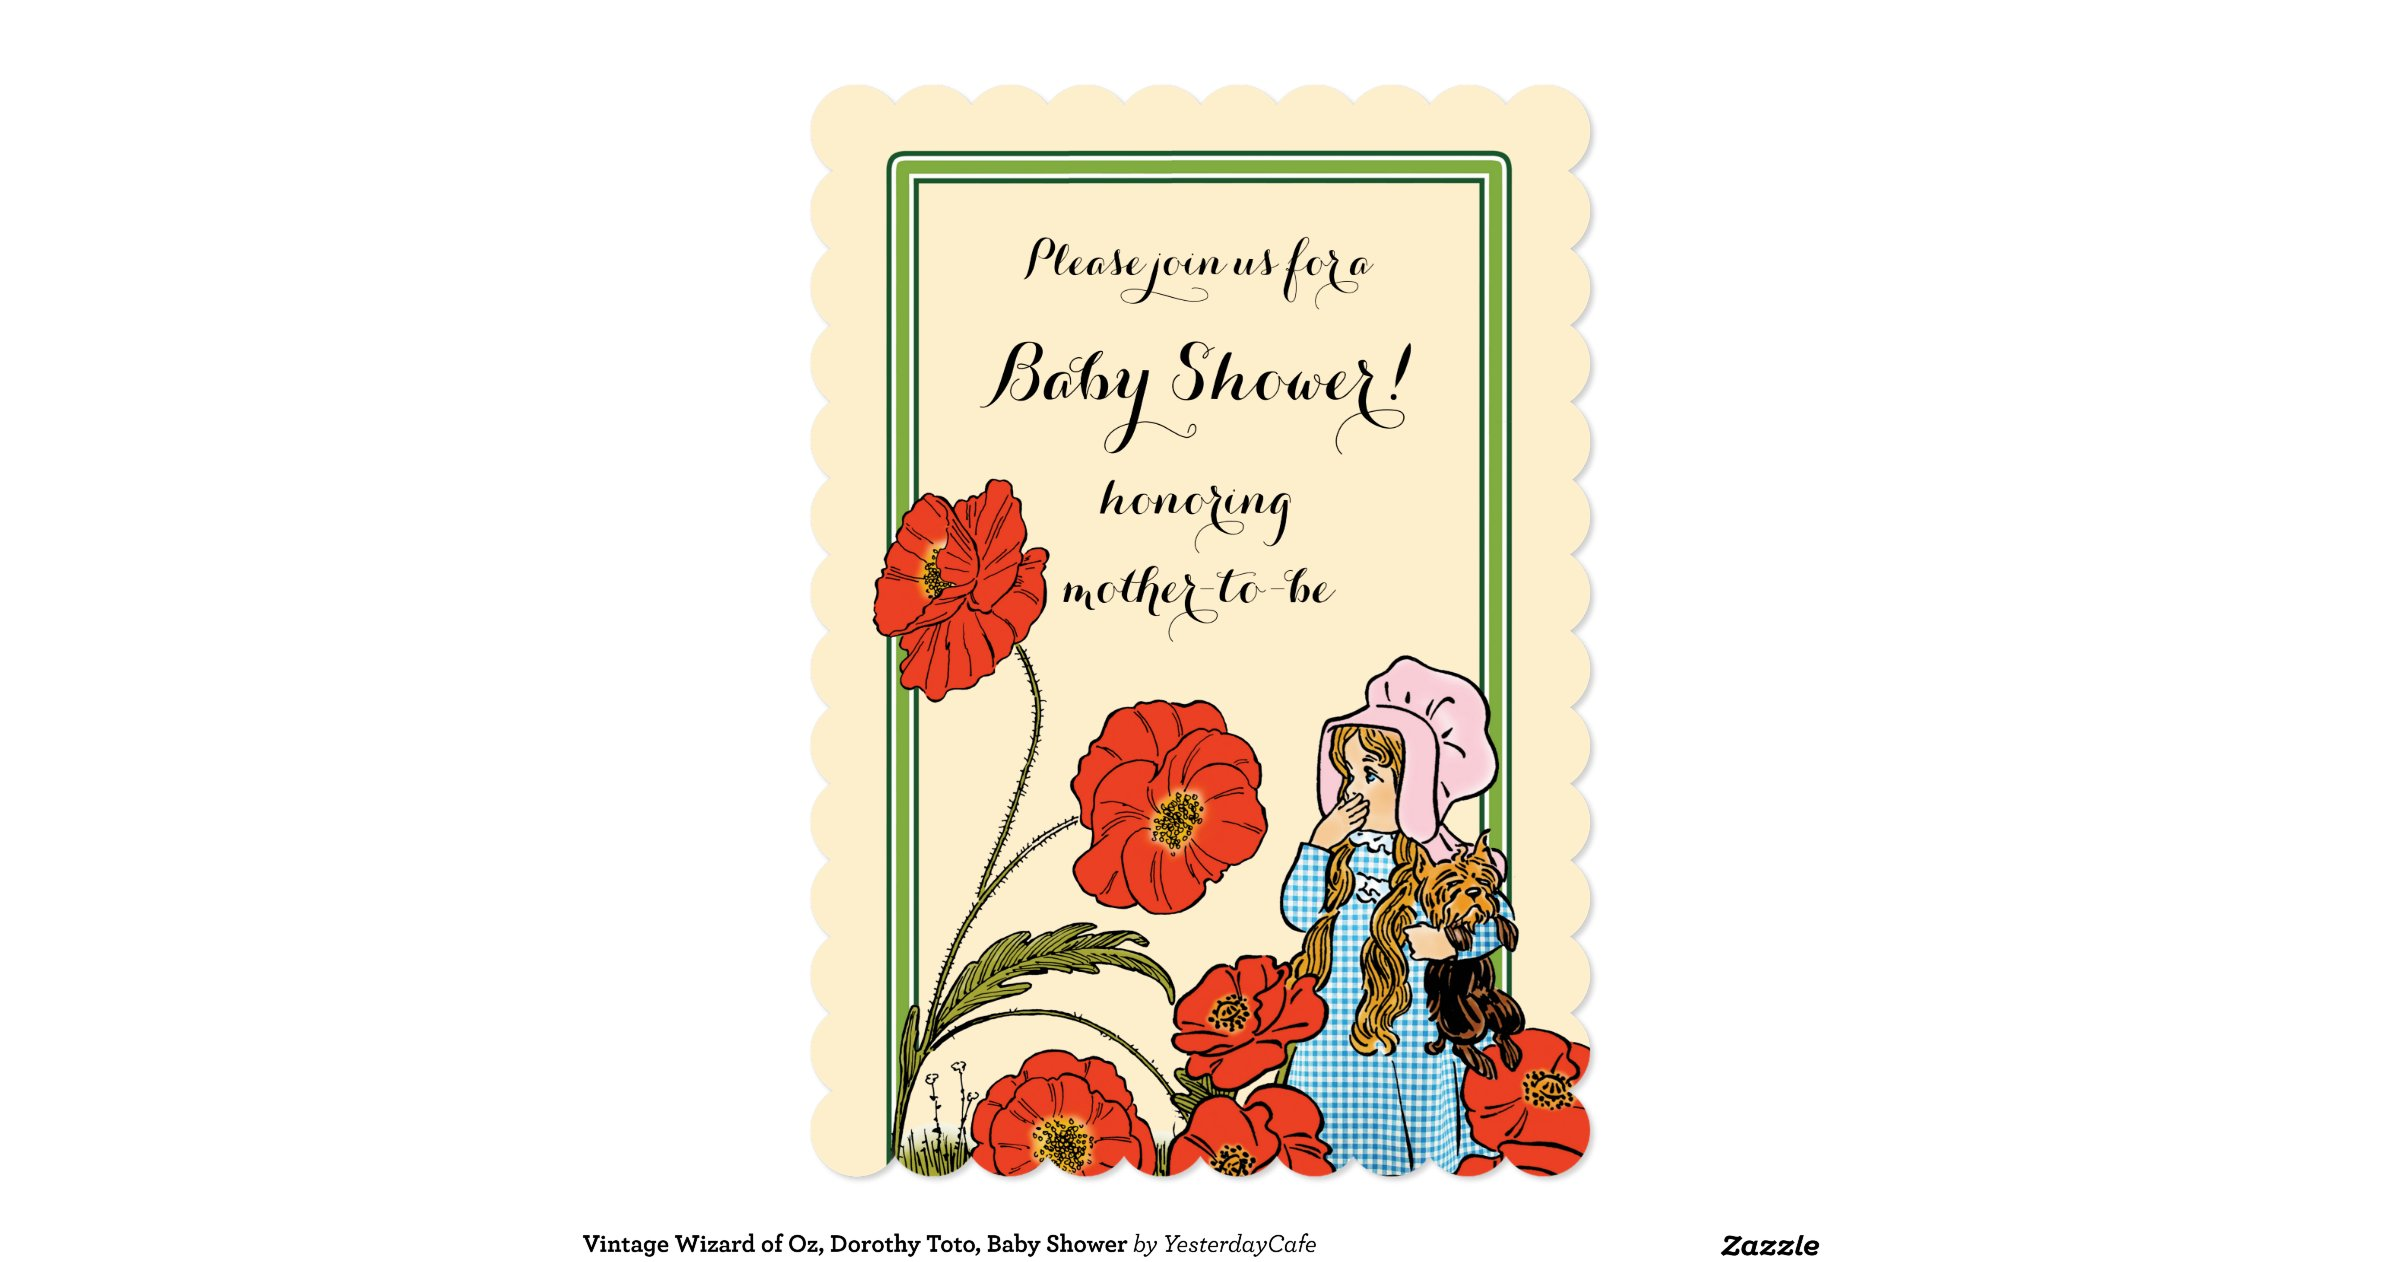 vintage wizard of oz dorothy toto baby shower 13 cm x 18 cm